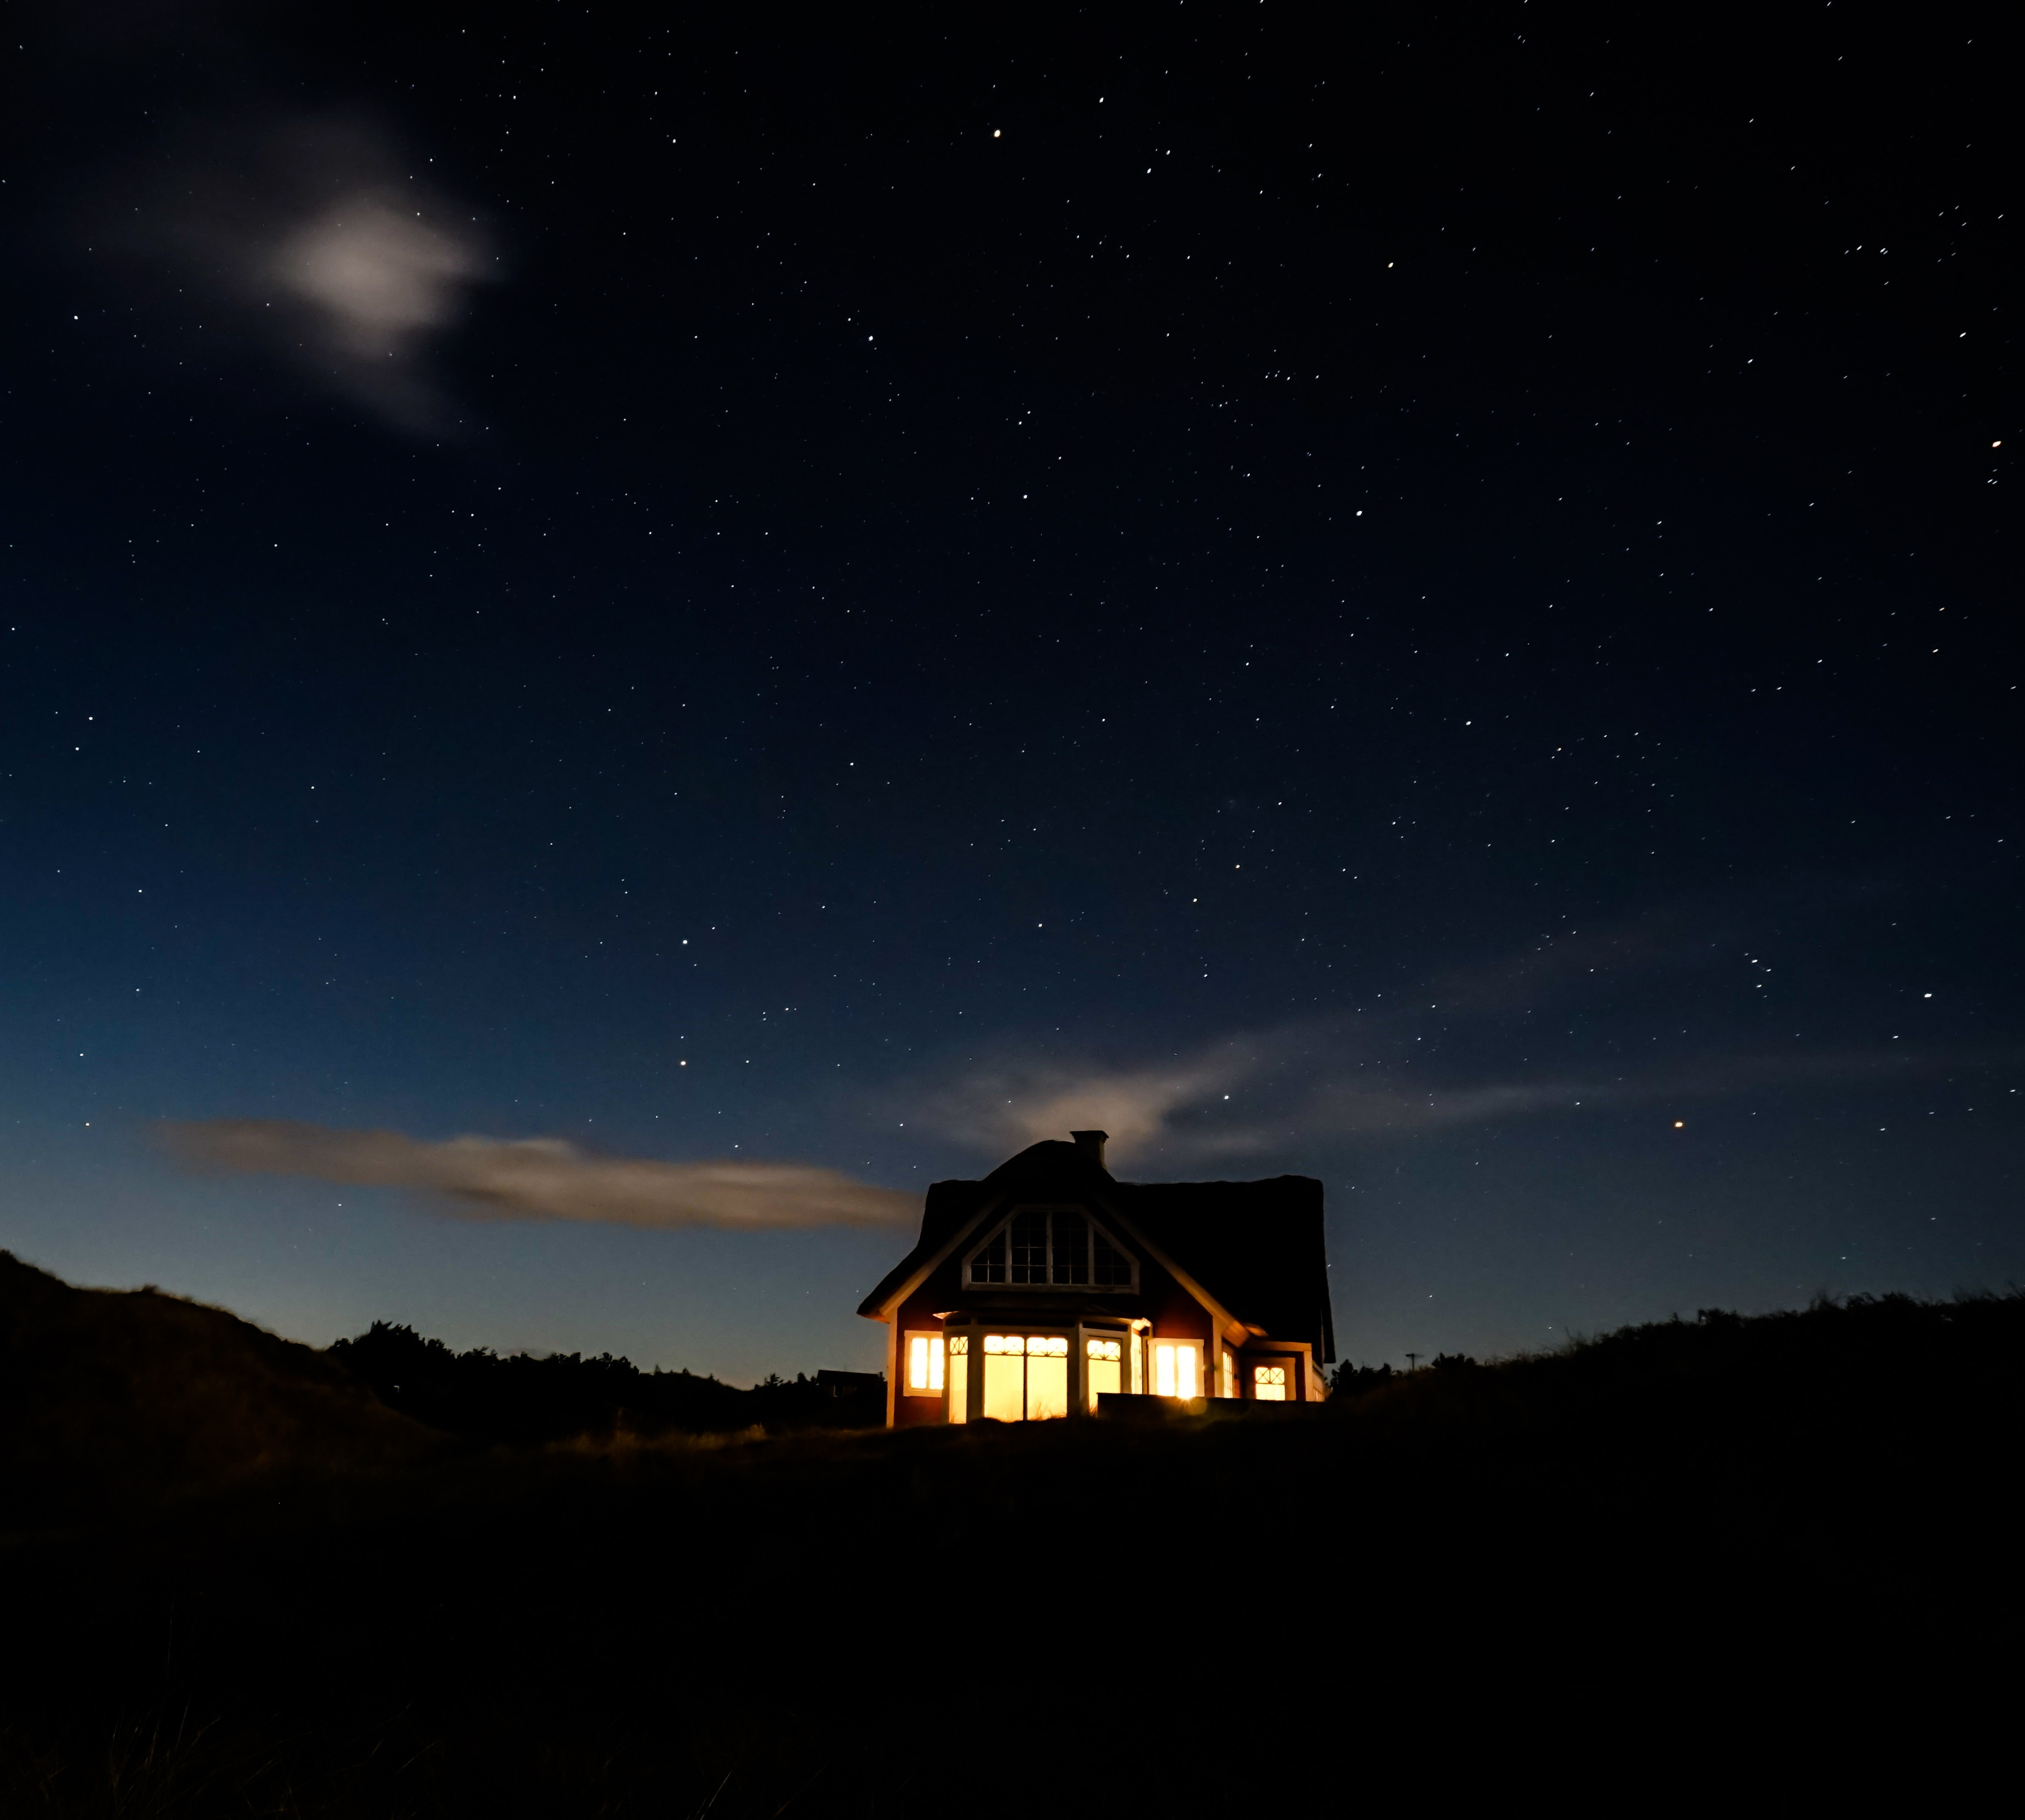 109428 download wallpaper Night, Dark, Shine, Light, Starry Sky, House, Coziness, Comfort, Calmness, Tranquillity screensavers and pictures for free